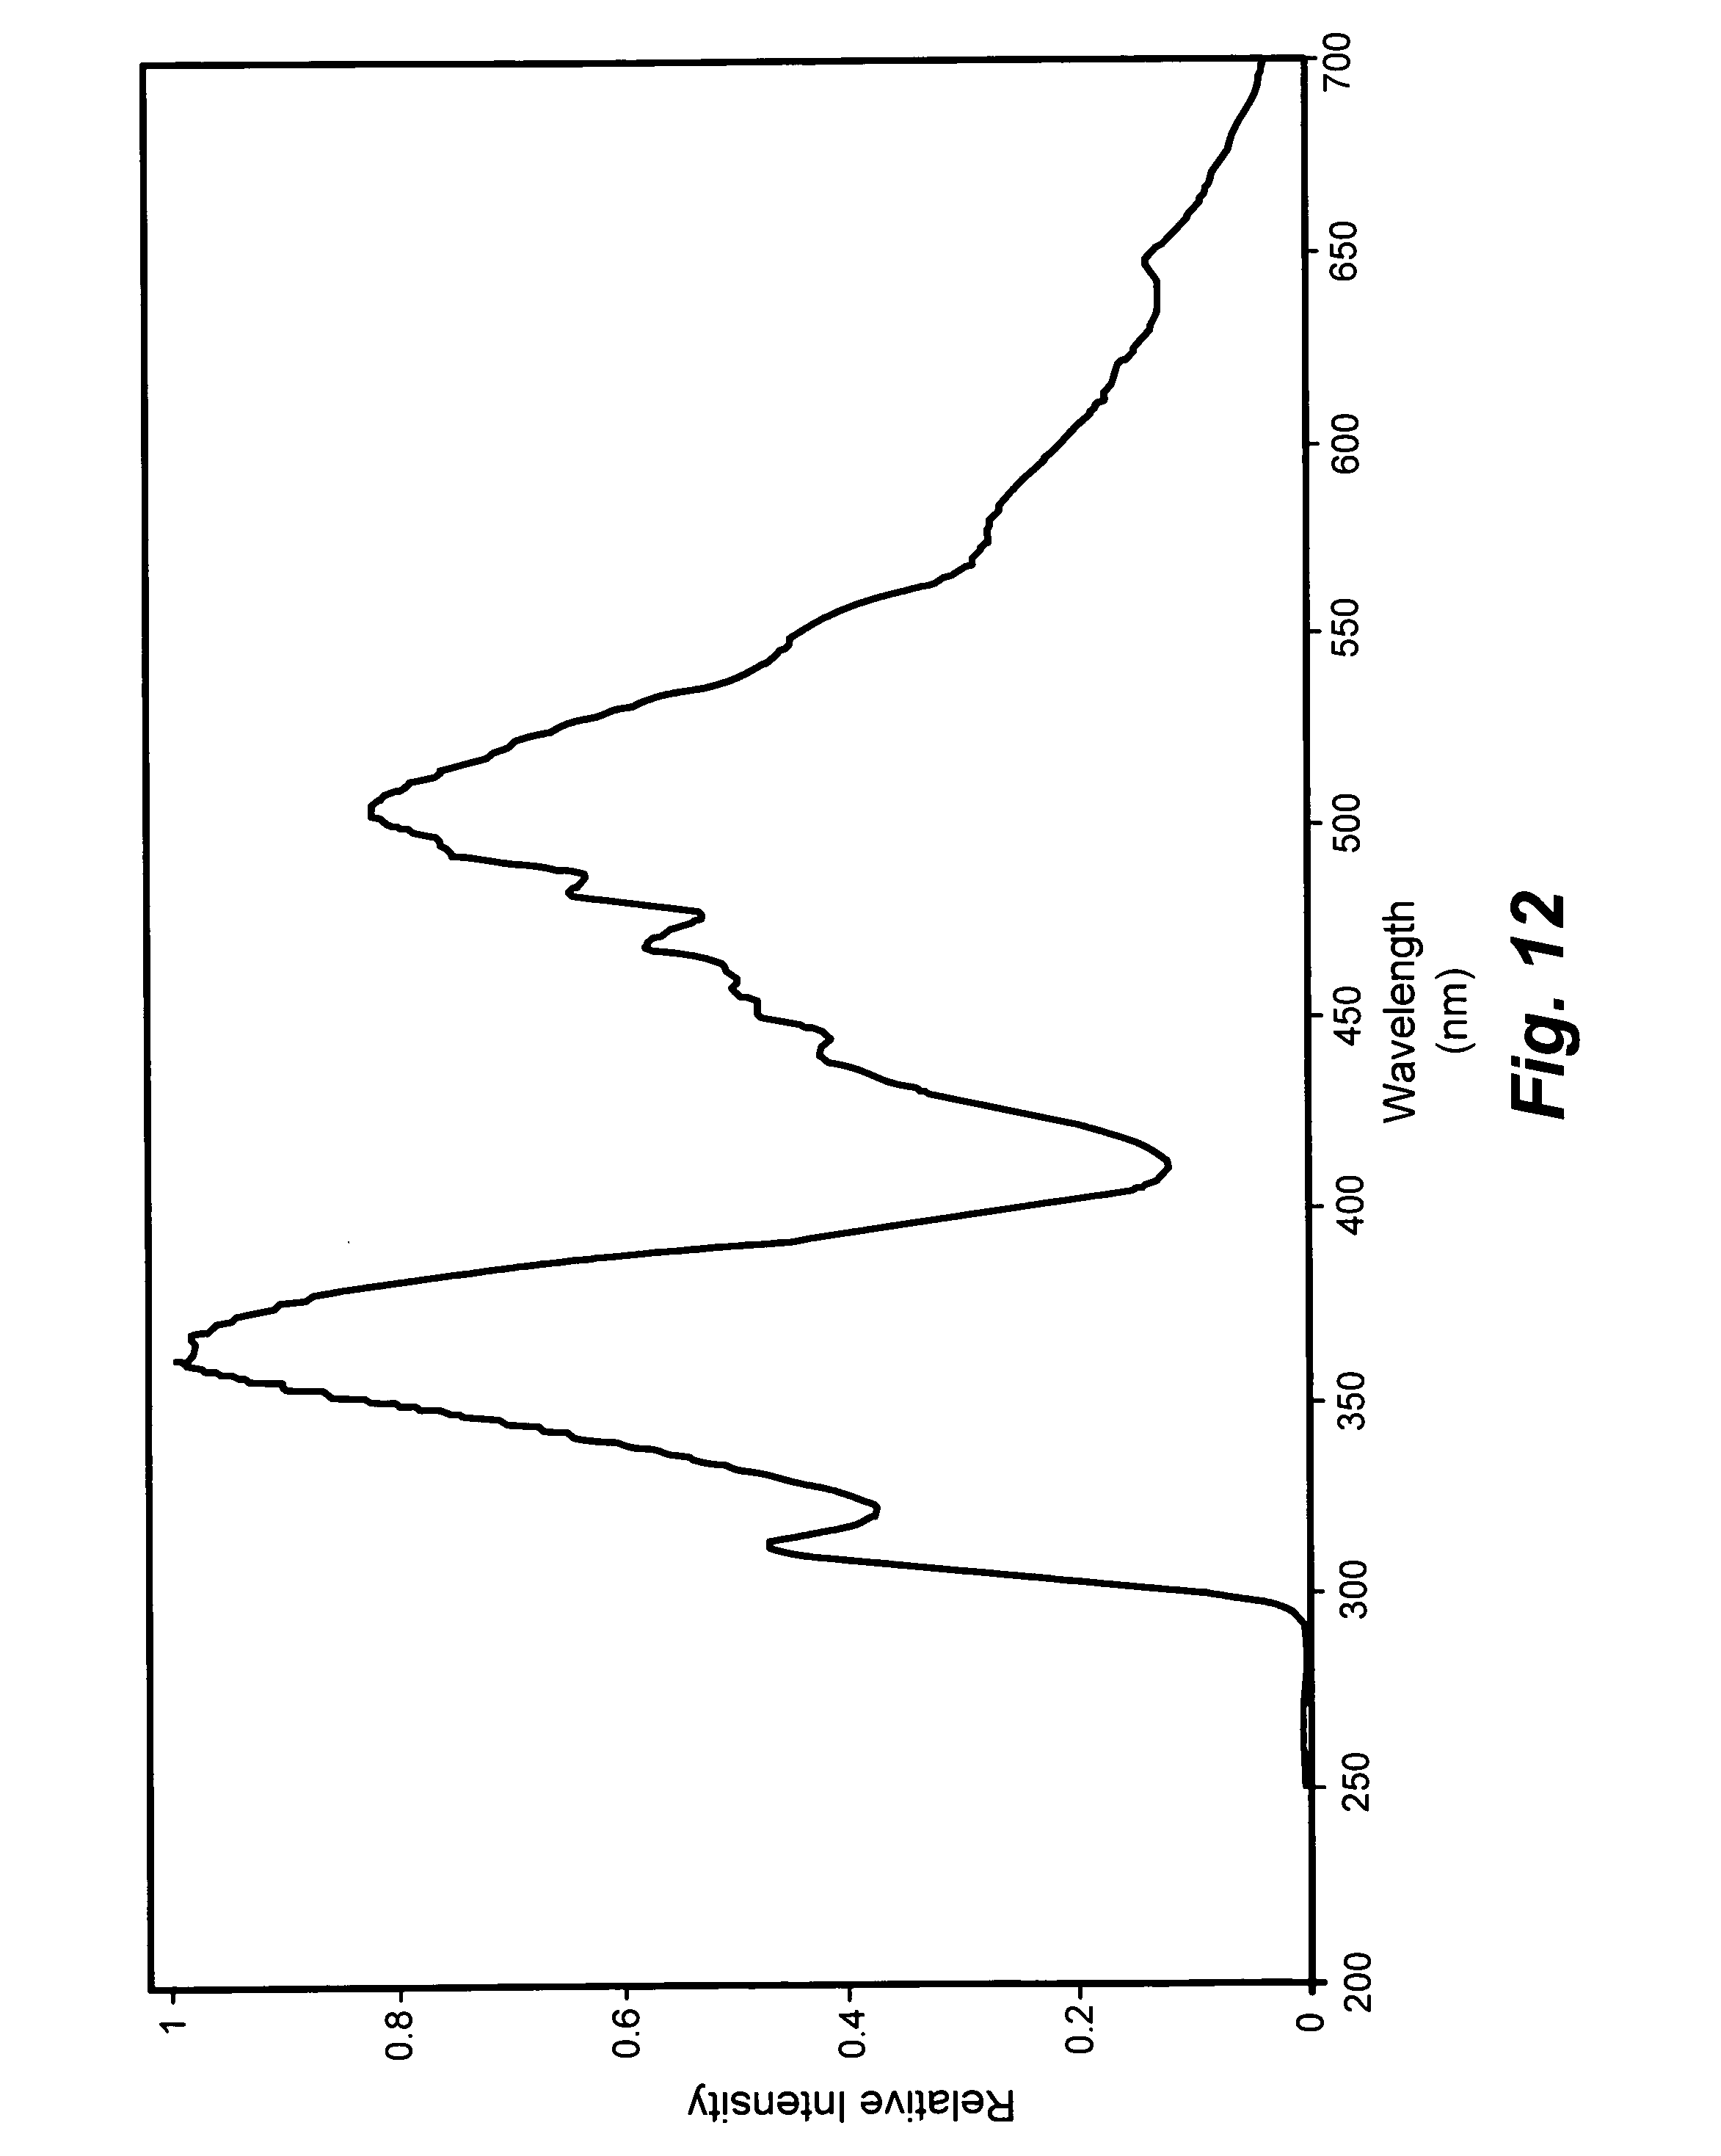 patent us7869033 - cancer detection by optical analysis of body fluids